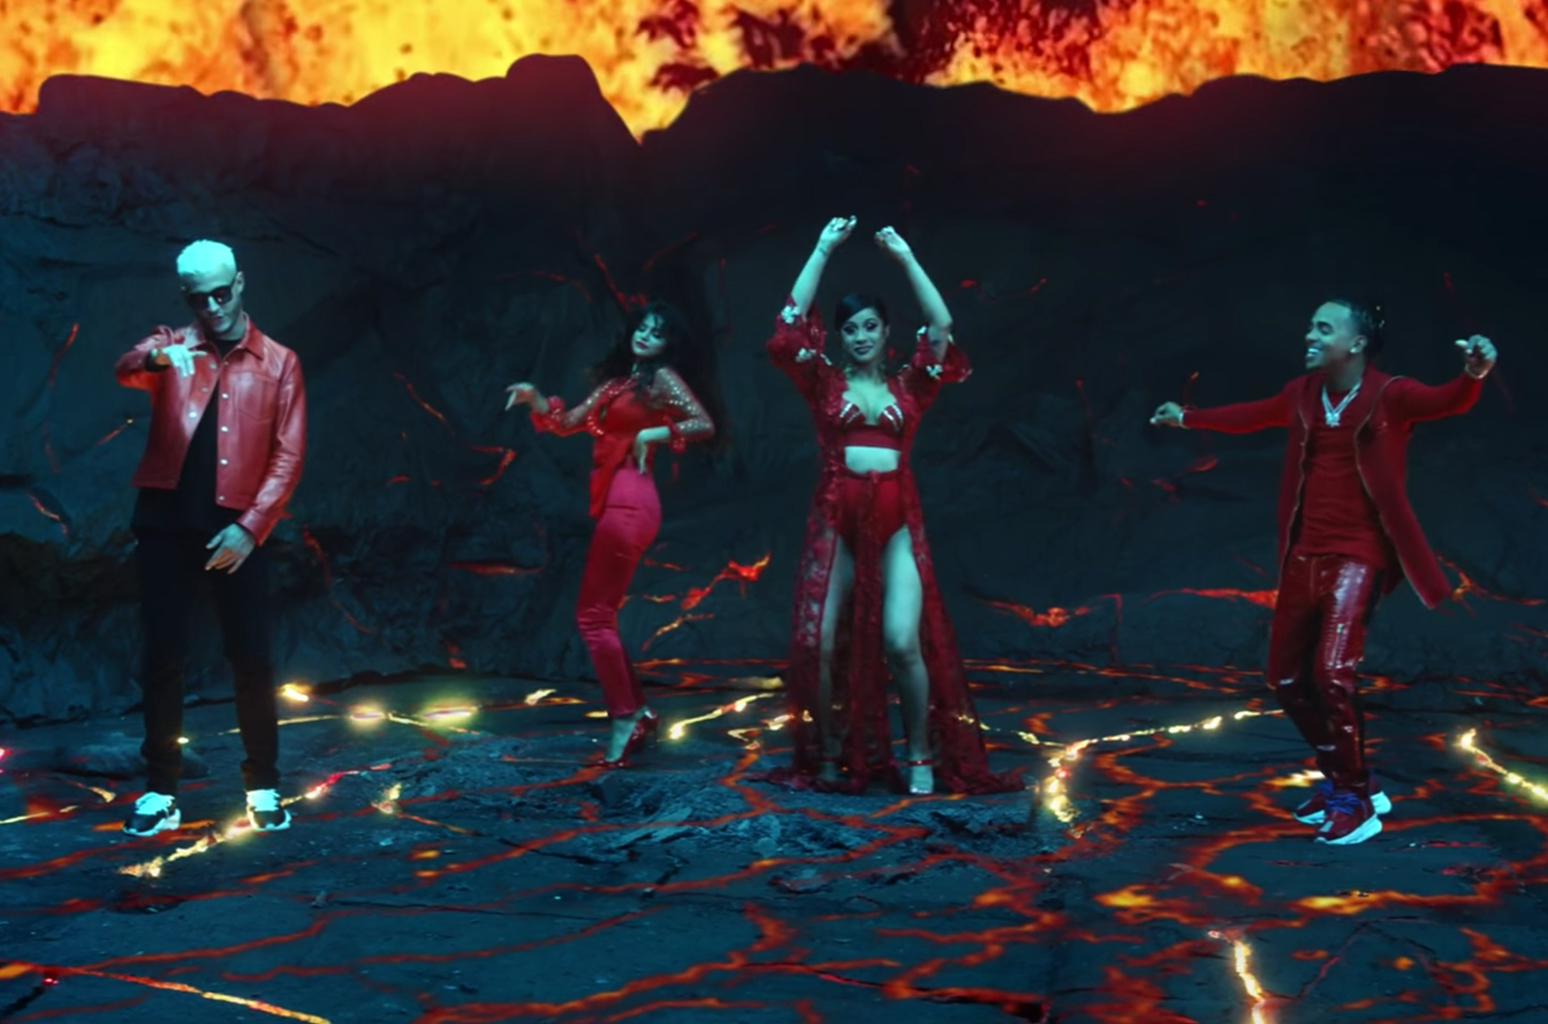 Cardi B, Ozuna, Selena Gomez Perform in a Volcano for DJ Snake's 'Taki Taki' Video